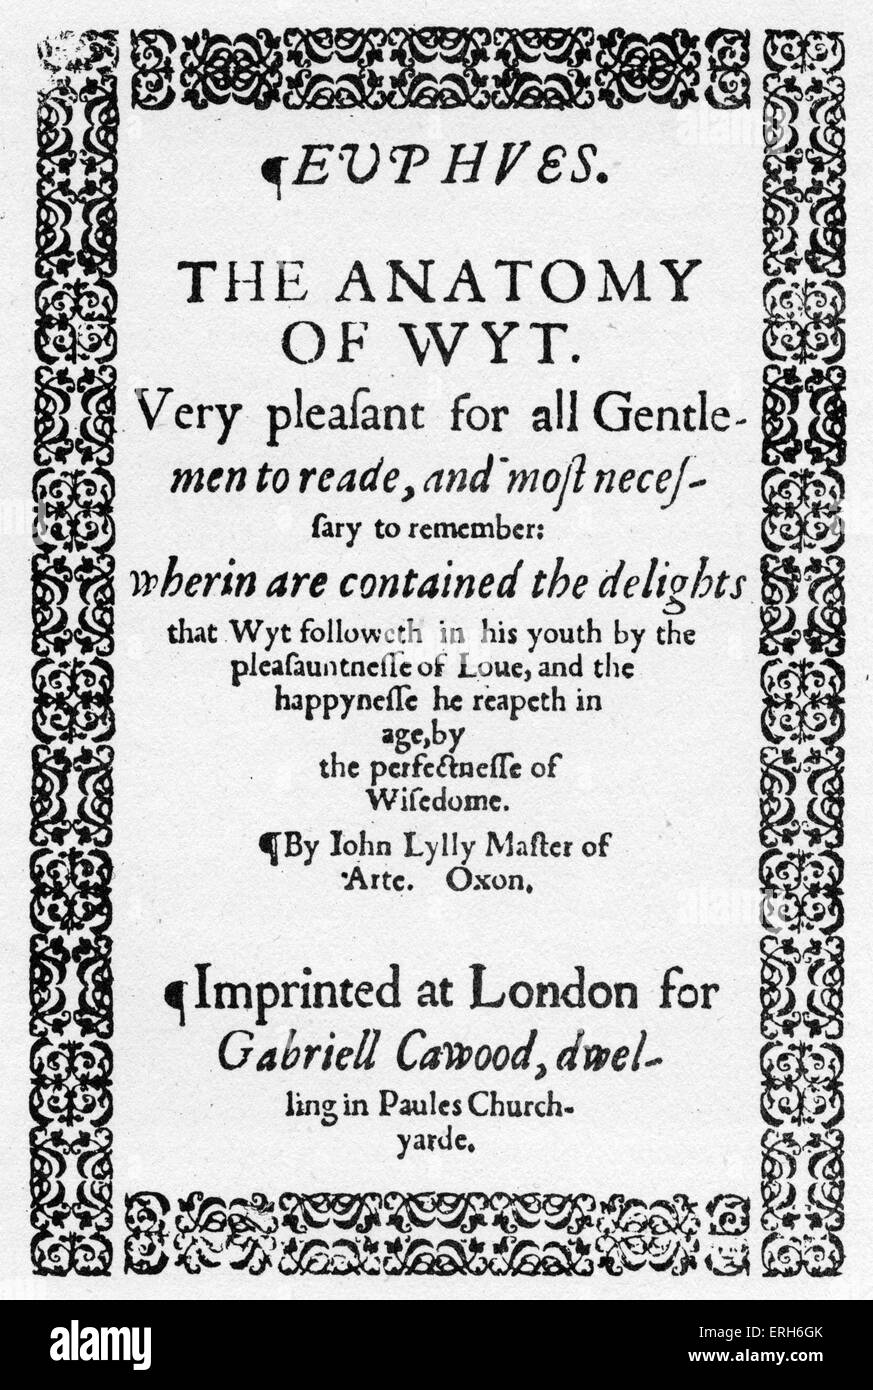 John Lyly\'s \'Euphues or the Anatomy of Wit\' - title page of the ...